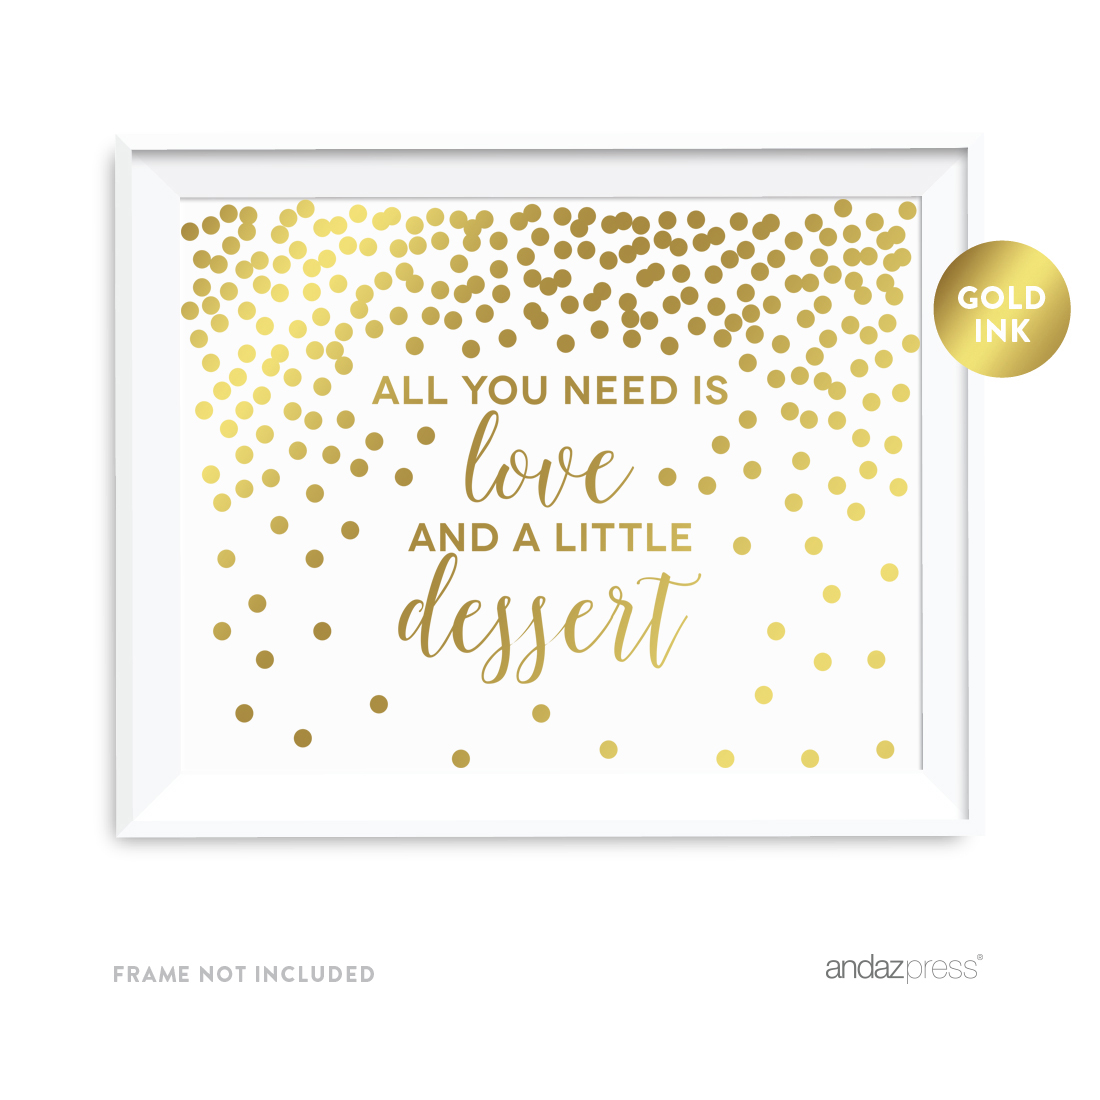 Metallic Gold Confetti Polka Dots 8.5x11-inch Party Sign, All You Need is Love and Little Dessert, Unframed